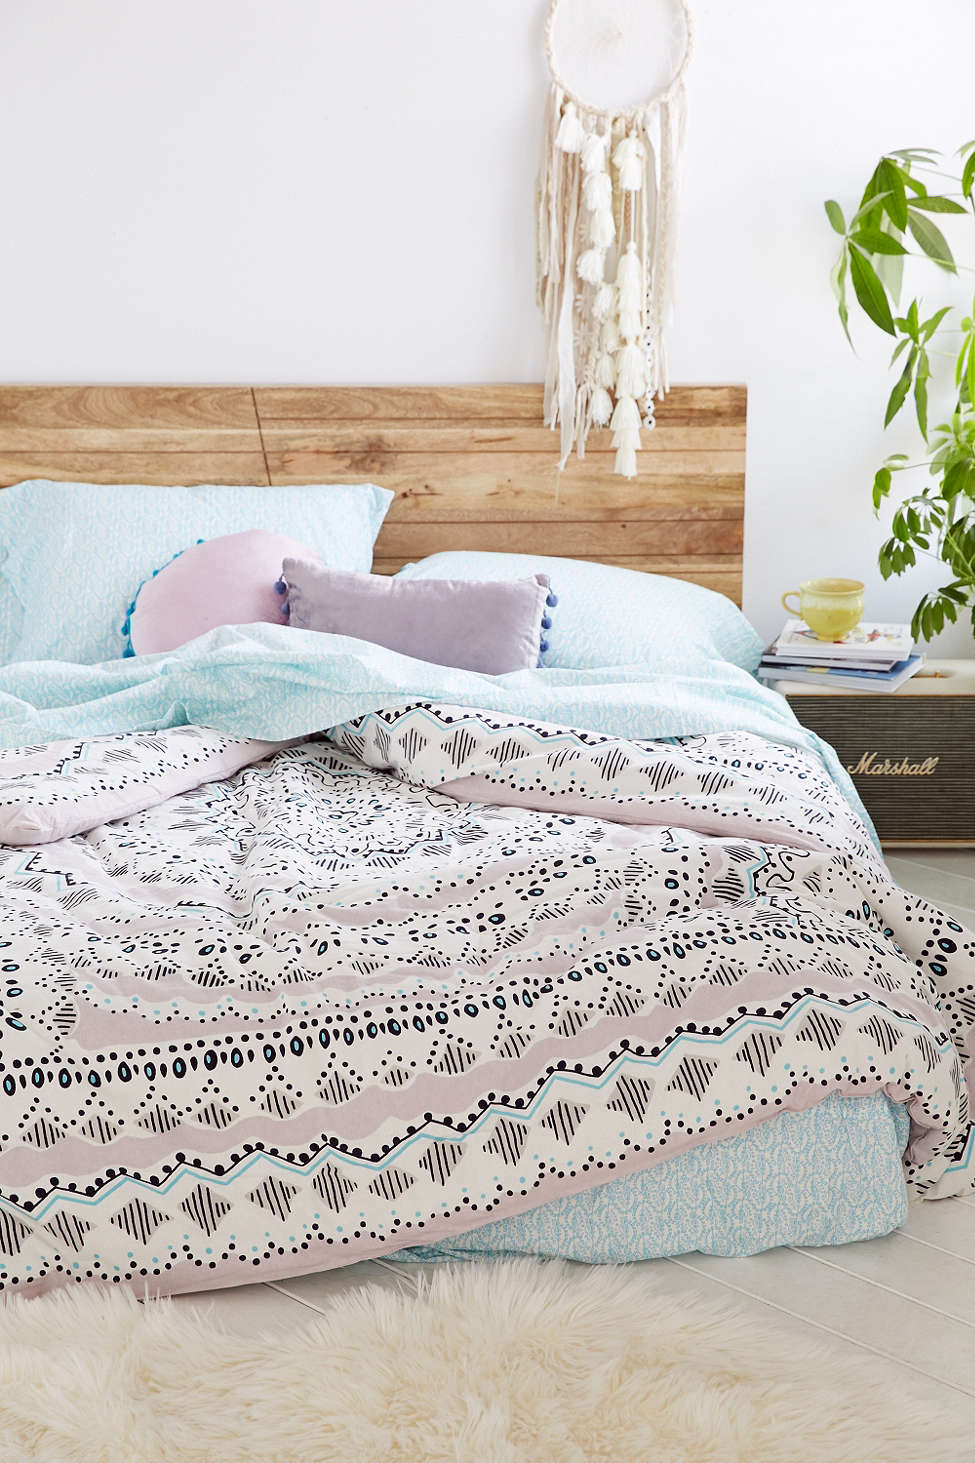 College Dorm Room Shopping Part 1: Bedding [Updated 2018] | Boho ...